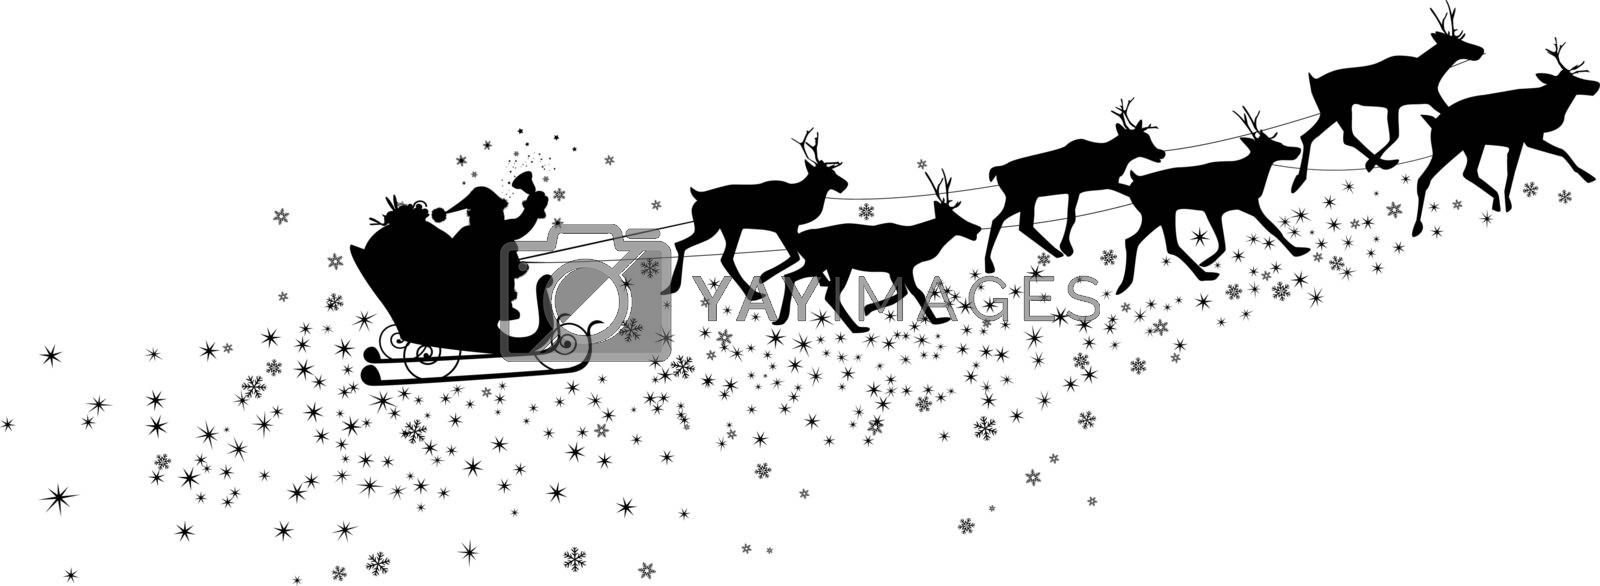 Silhouette of Santa Claus and deer. Snowflakes and asterisks.